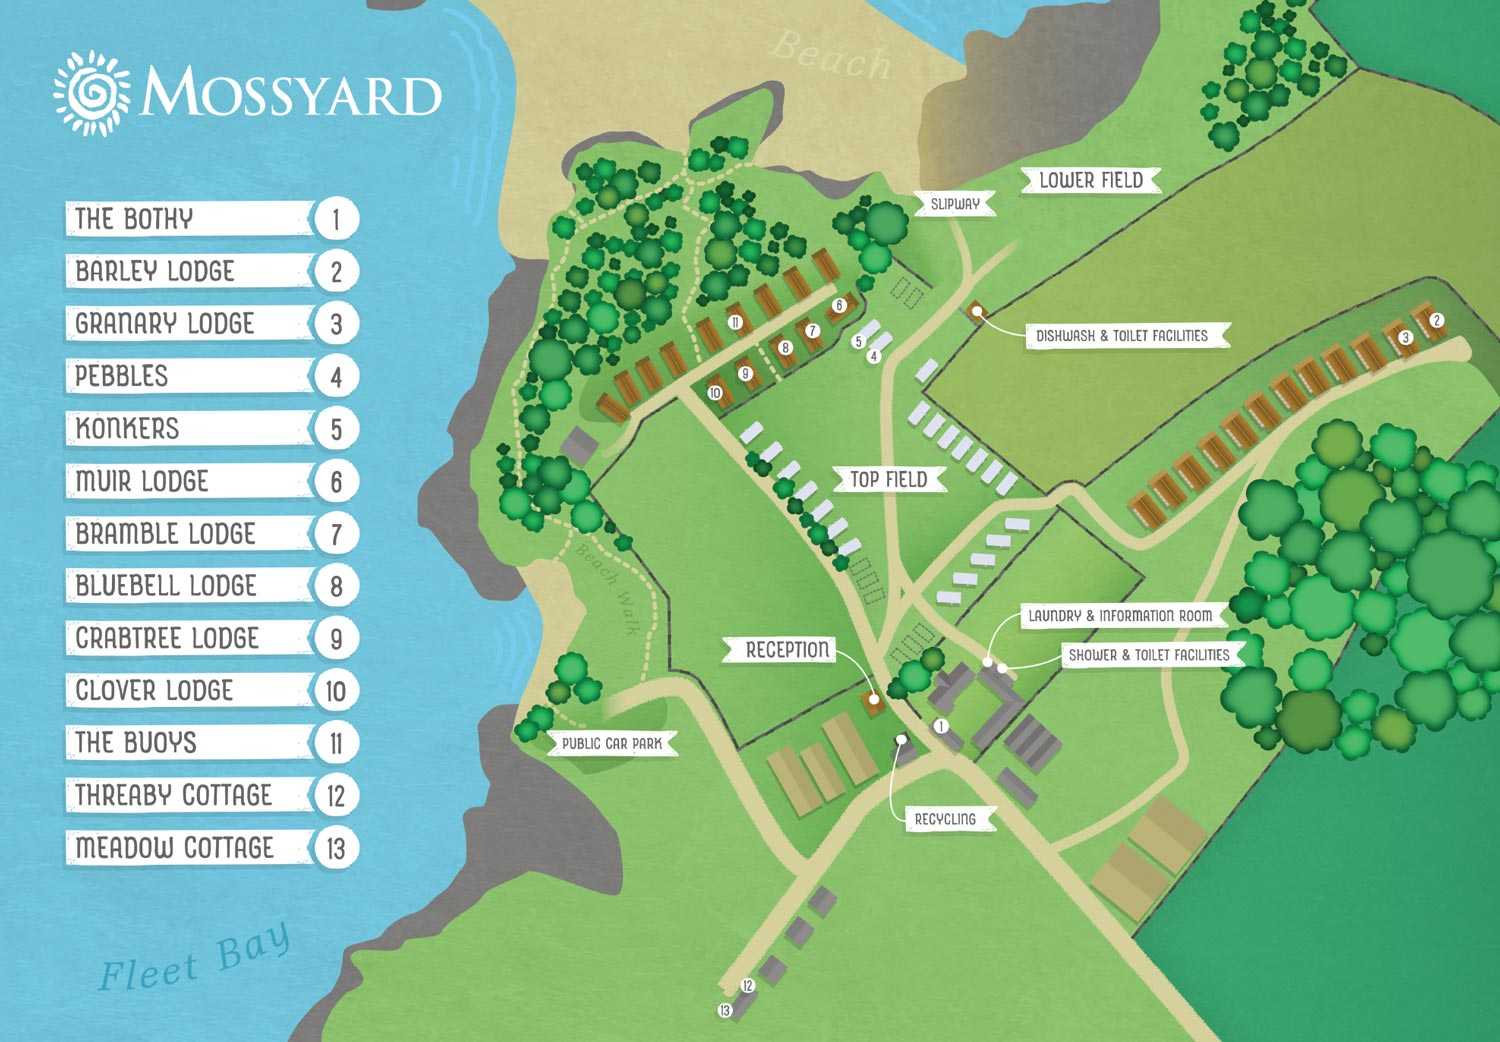 Site plan of Mossyard Caravan Park